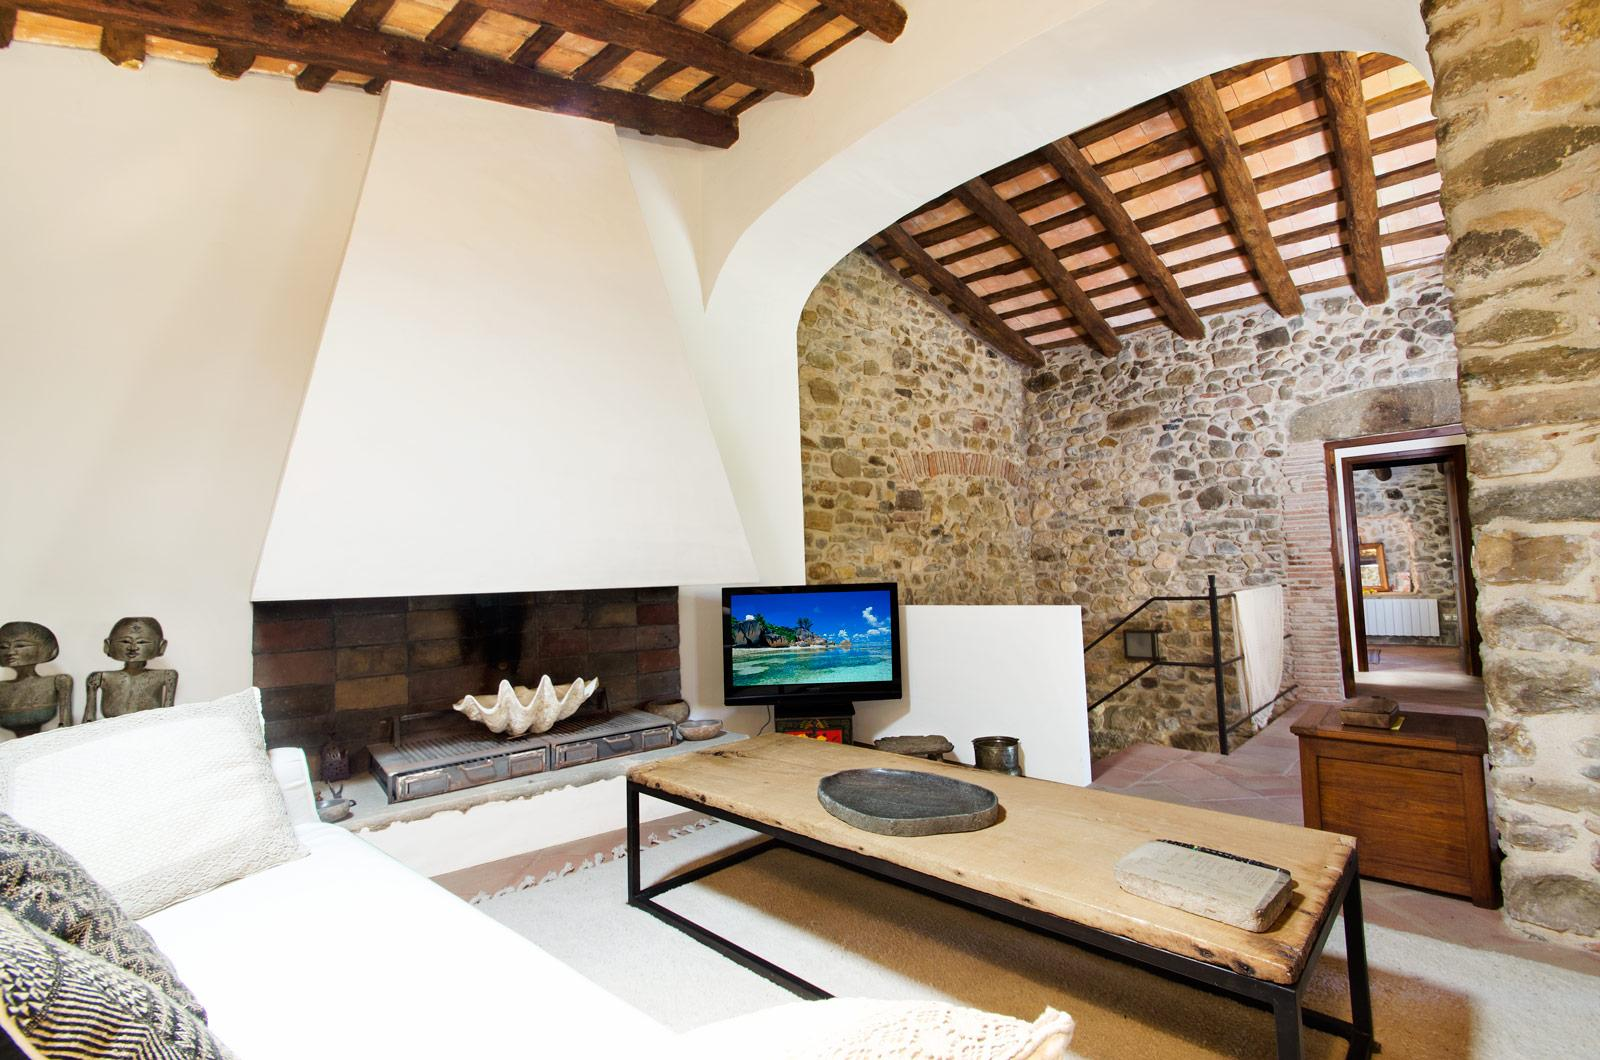 11. Villa for sale in Girona - Traditional Masia, Catalonia country house, for sale in Girona